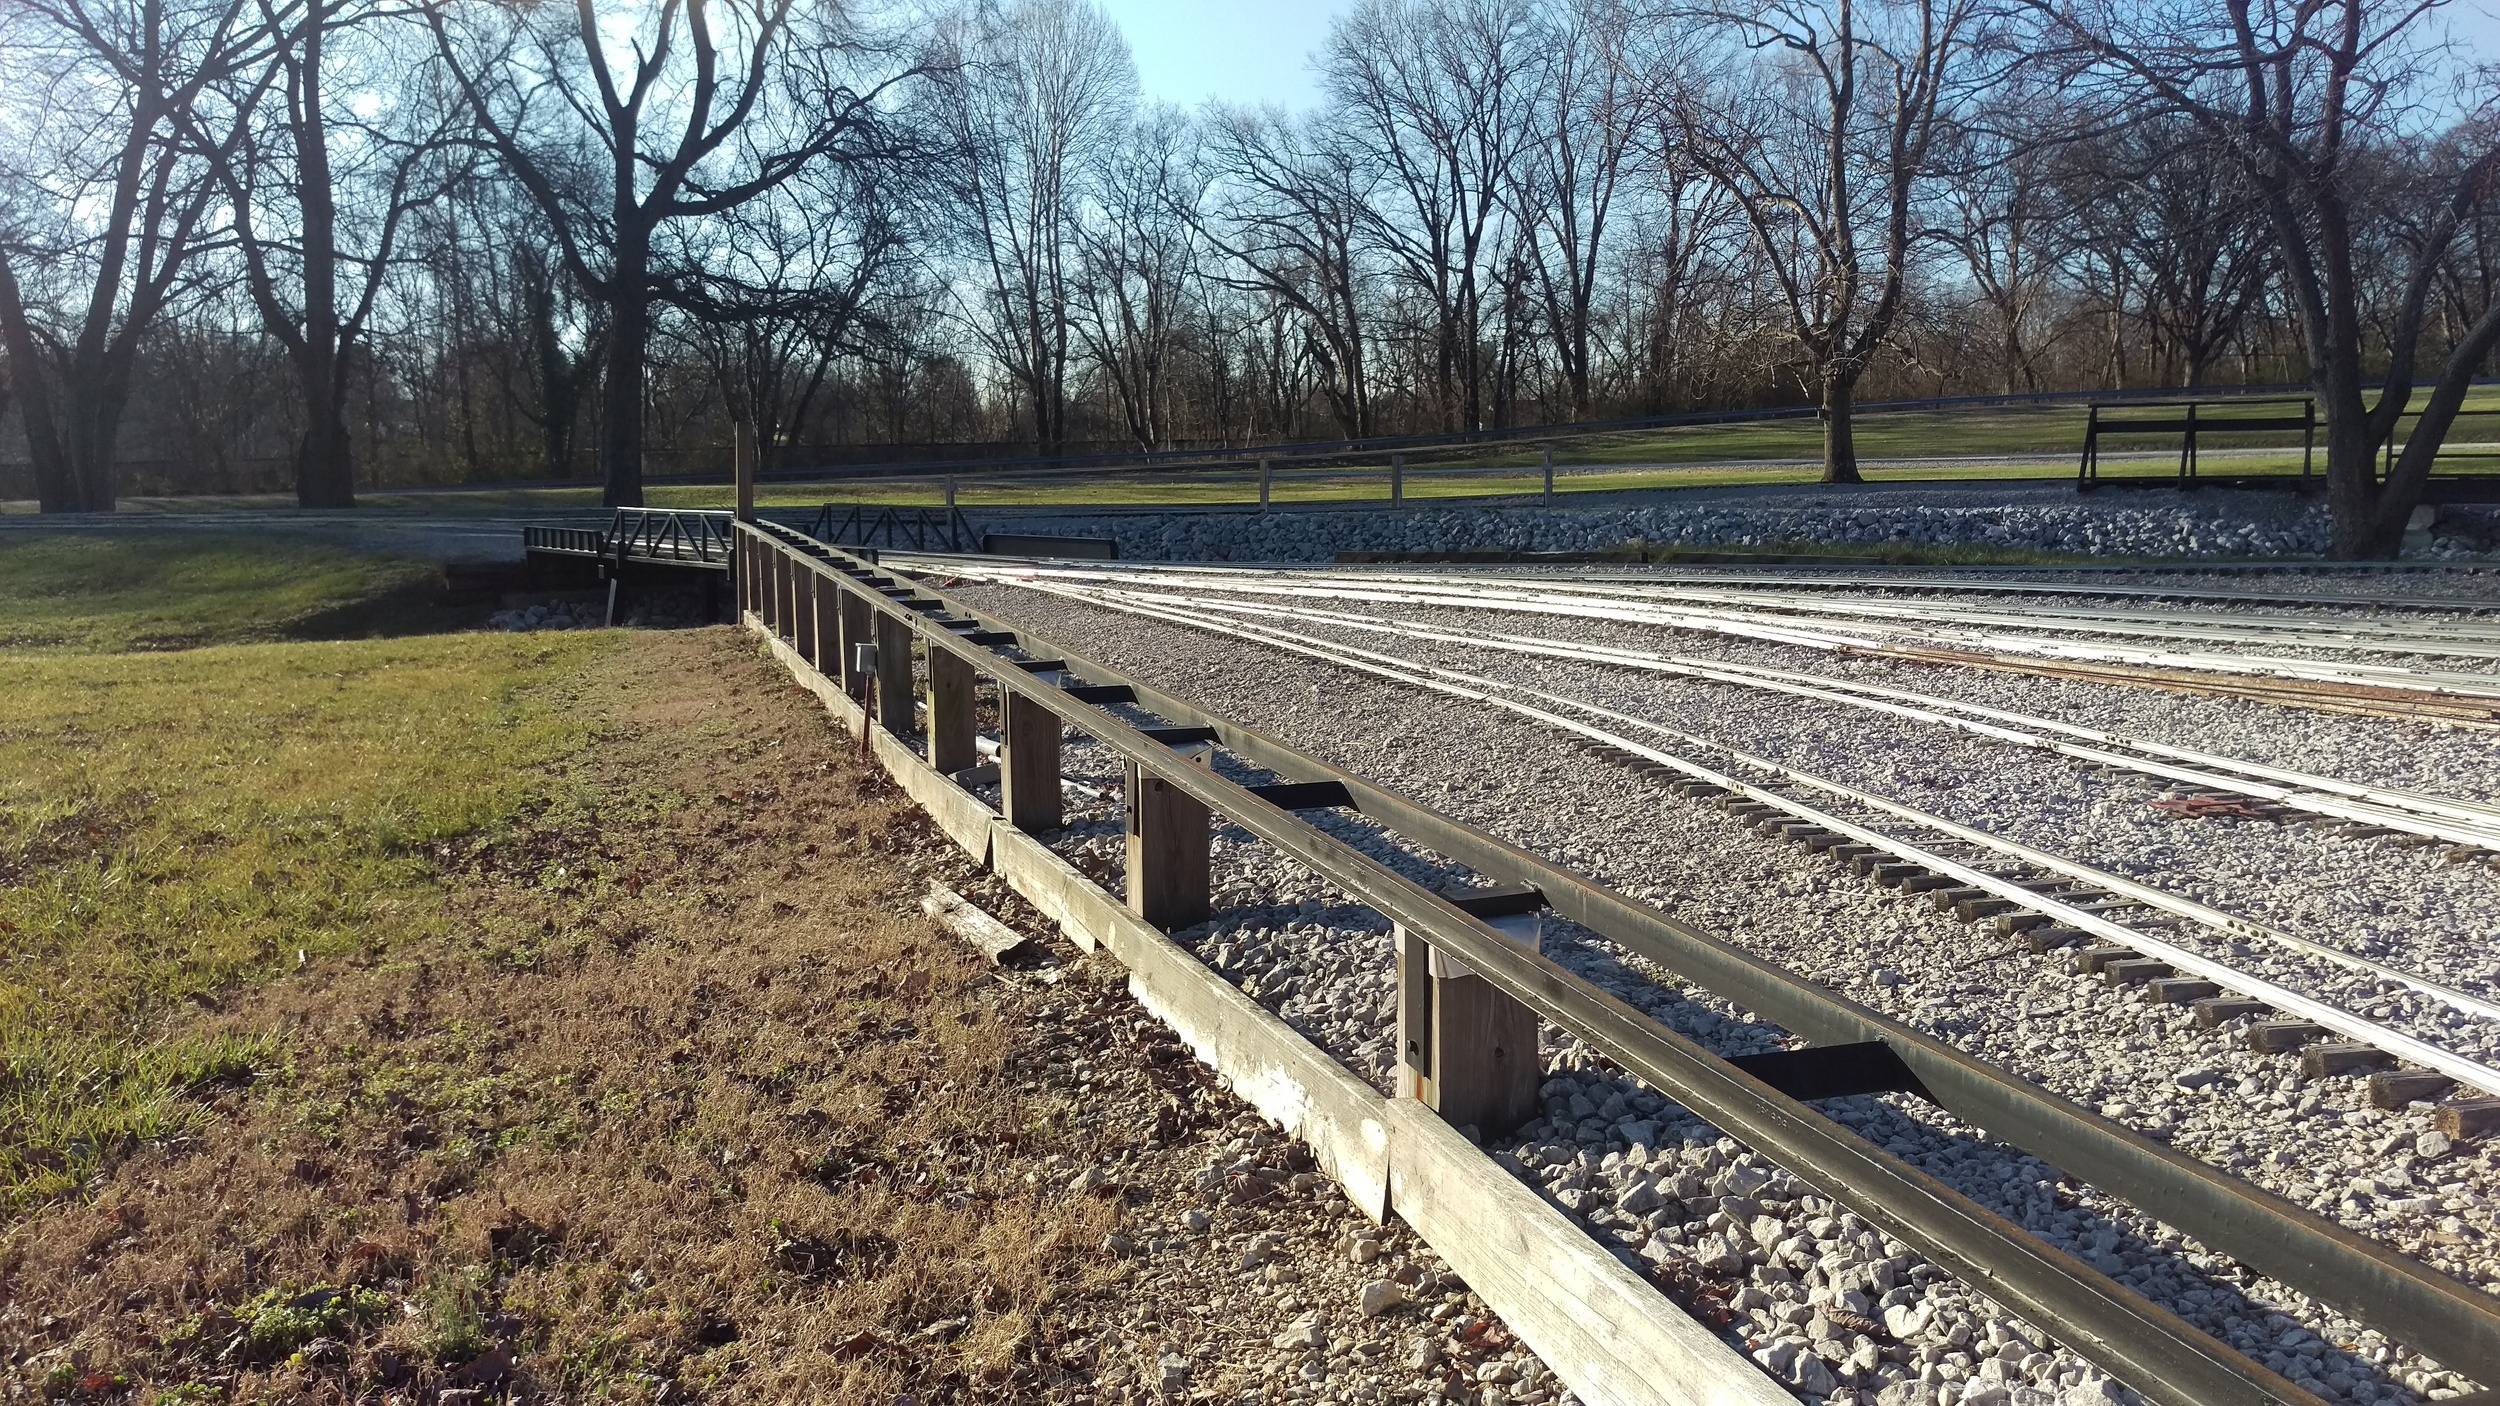 ELEVATED RAMP FOR INSPECTION & REPAIR - 50 FEET